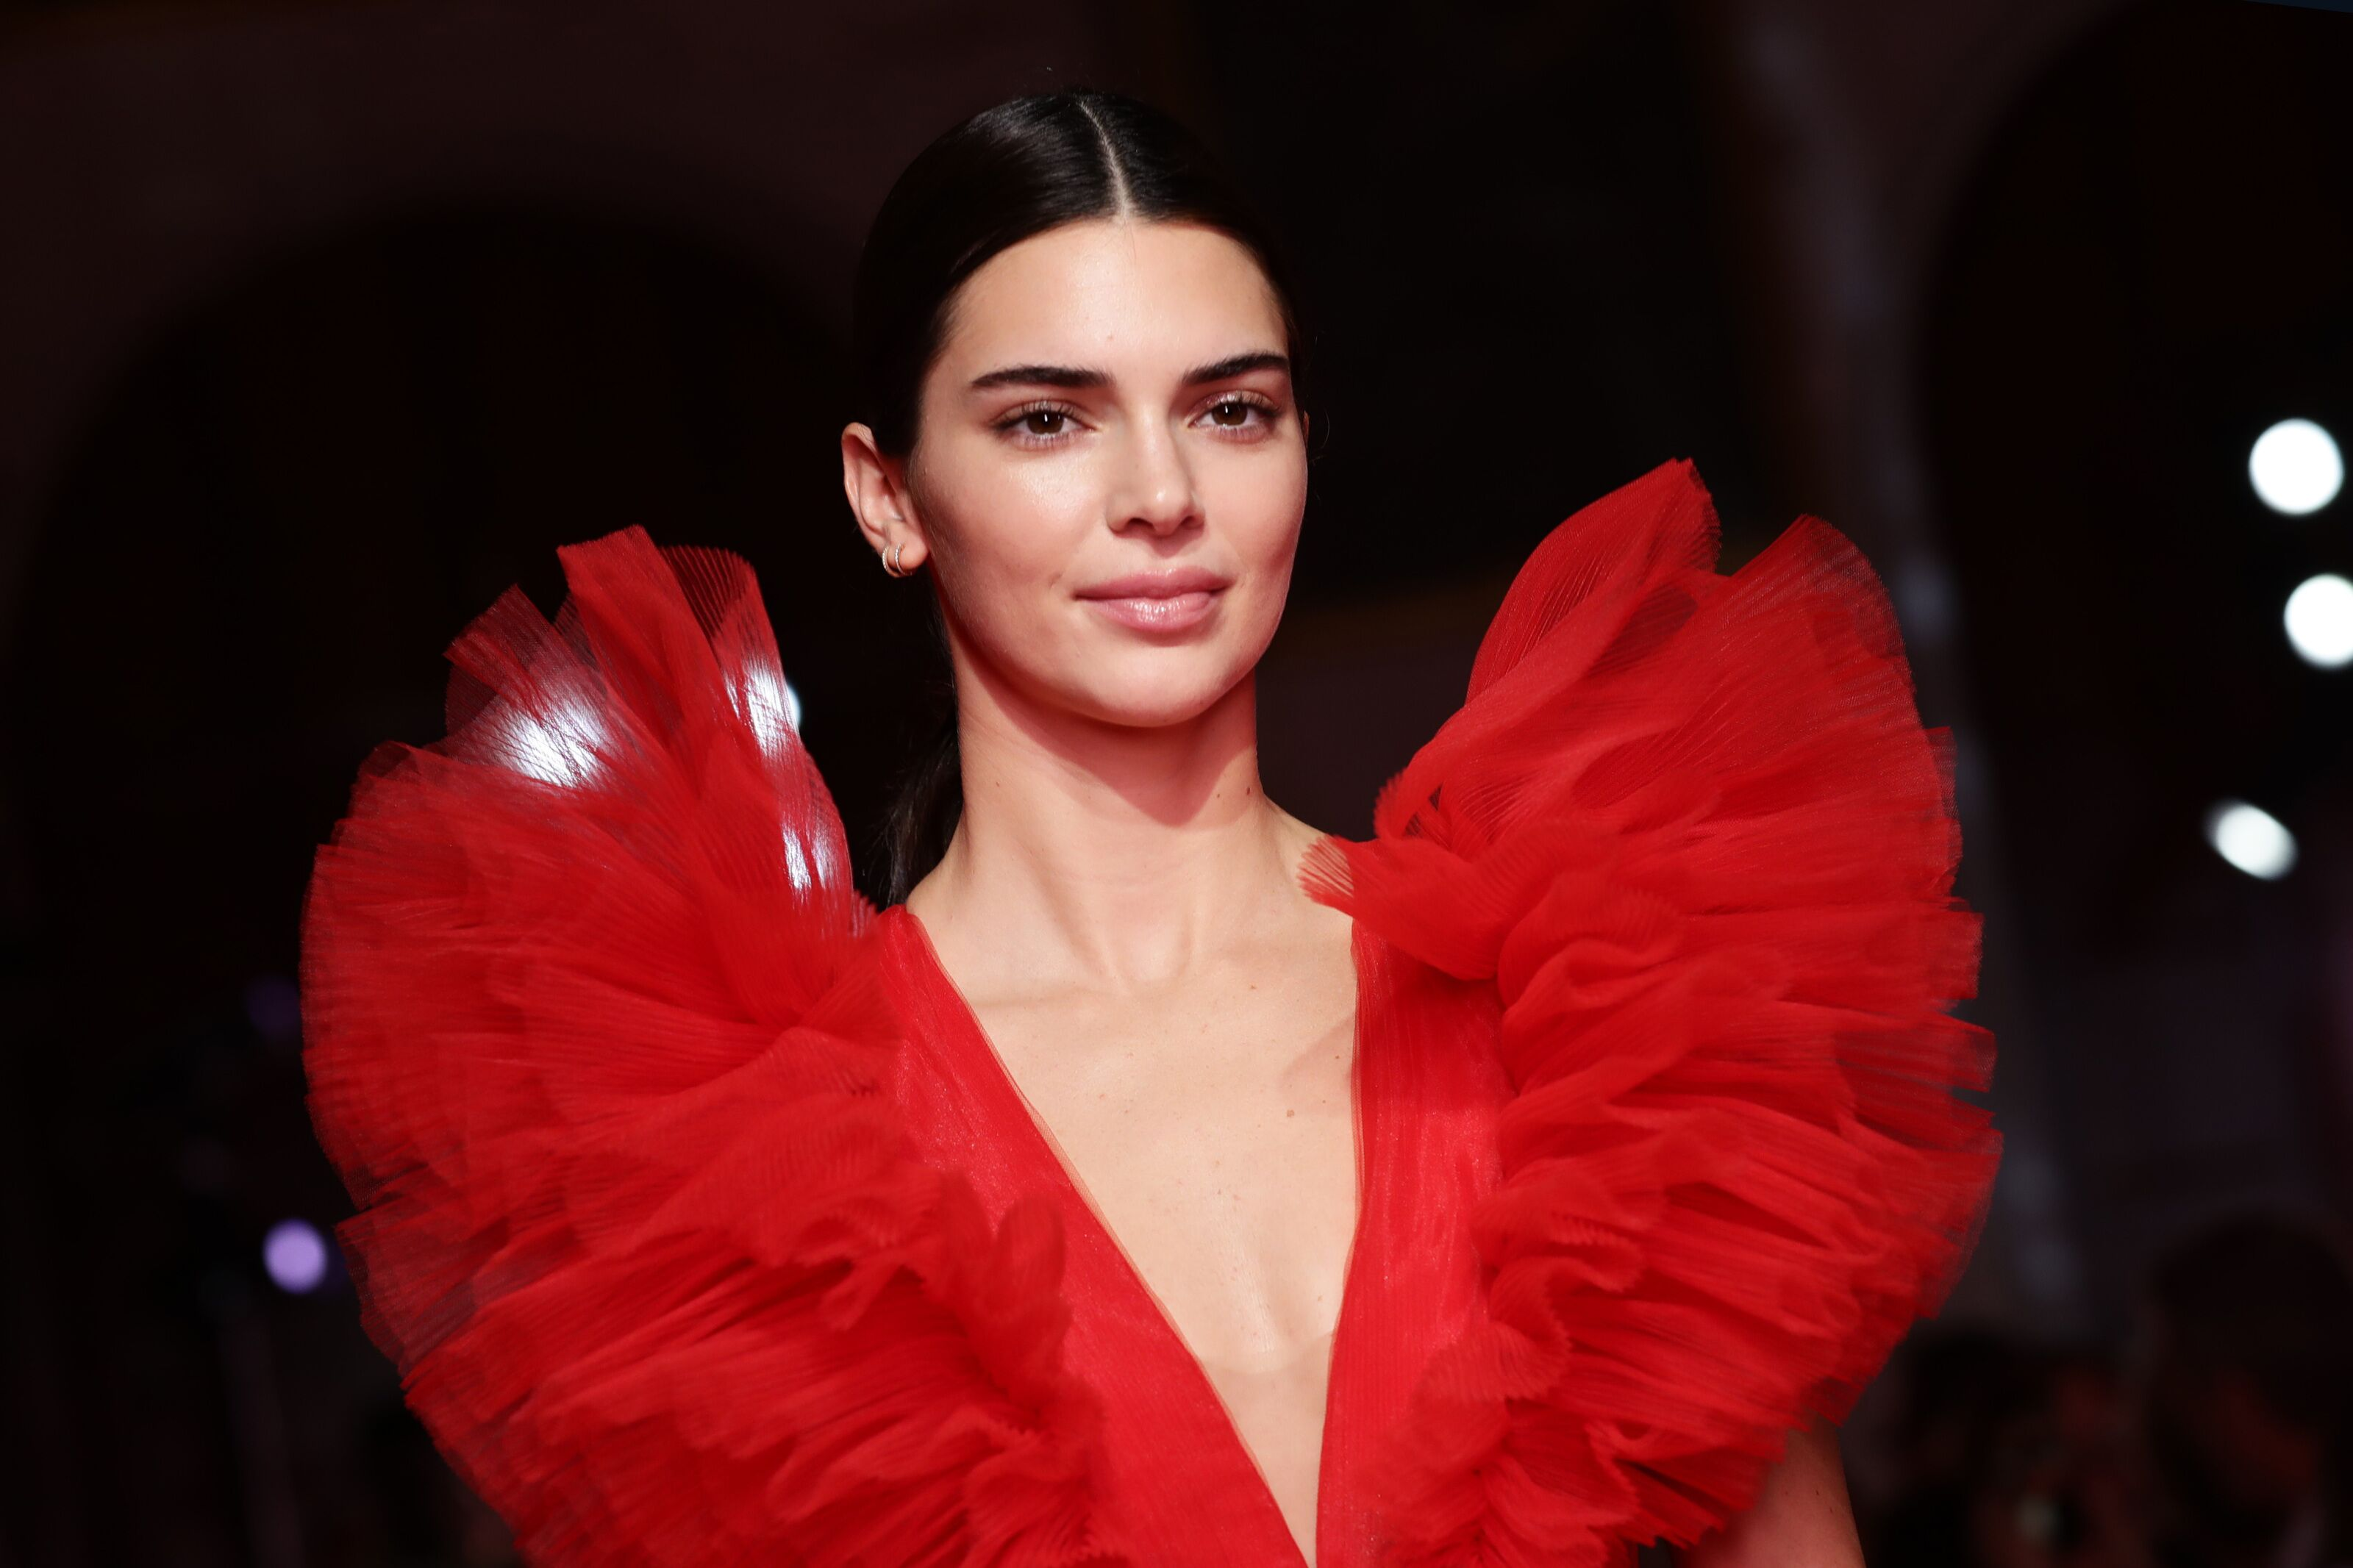 Kendall Jenner in new Giambattista Valli x H&M collection